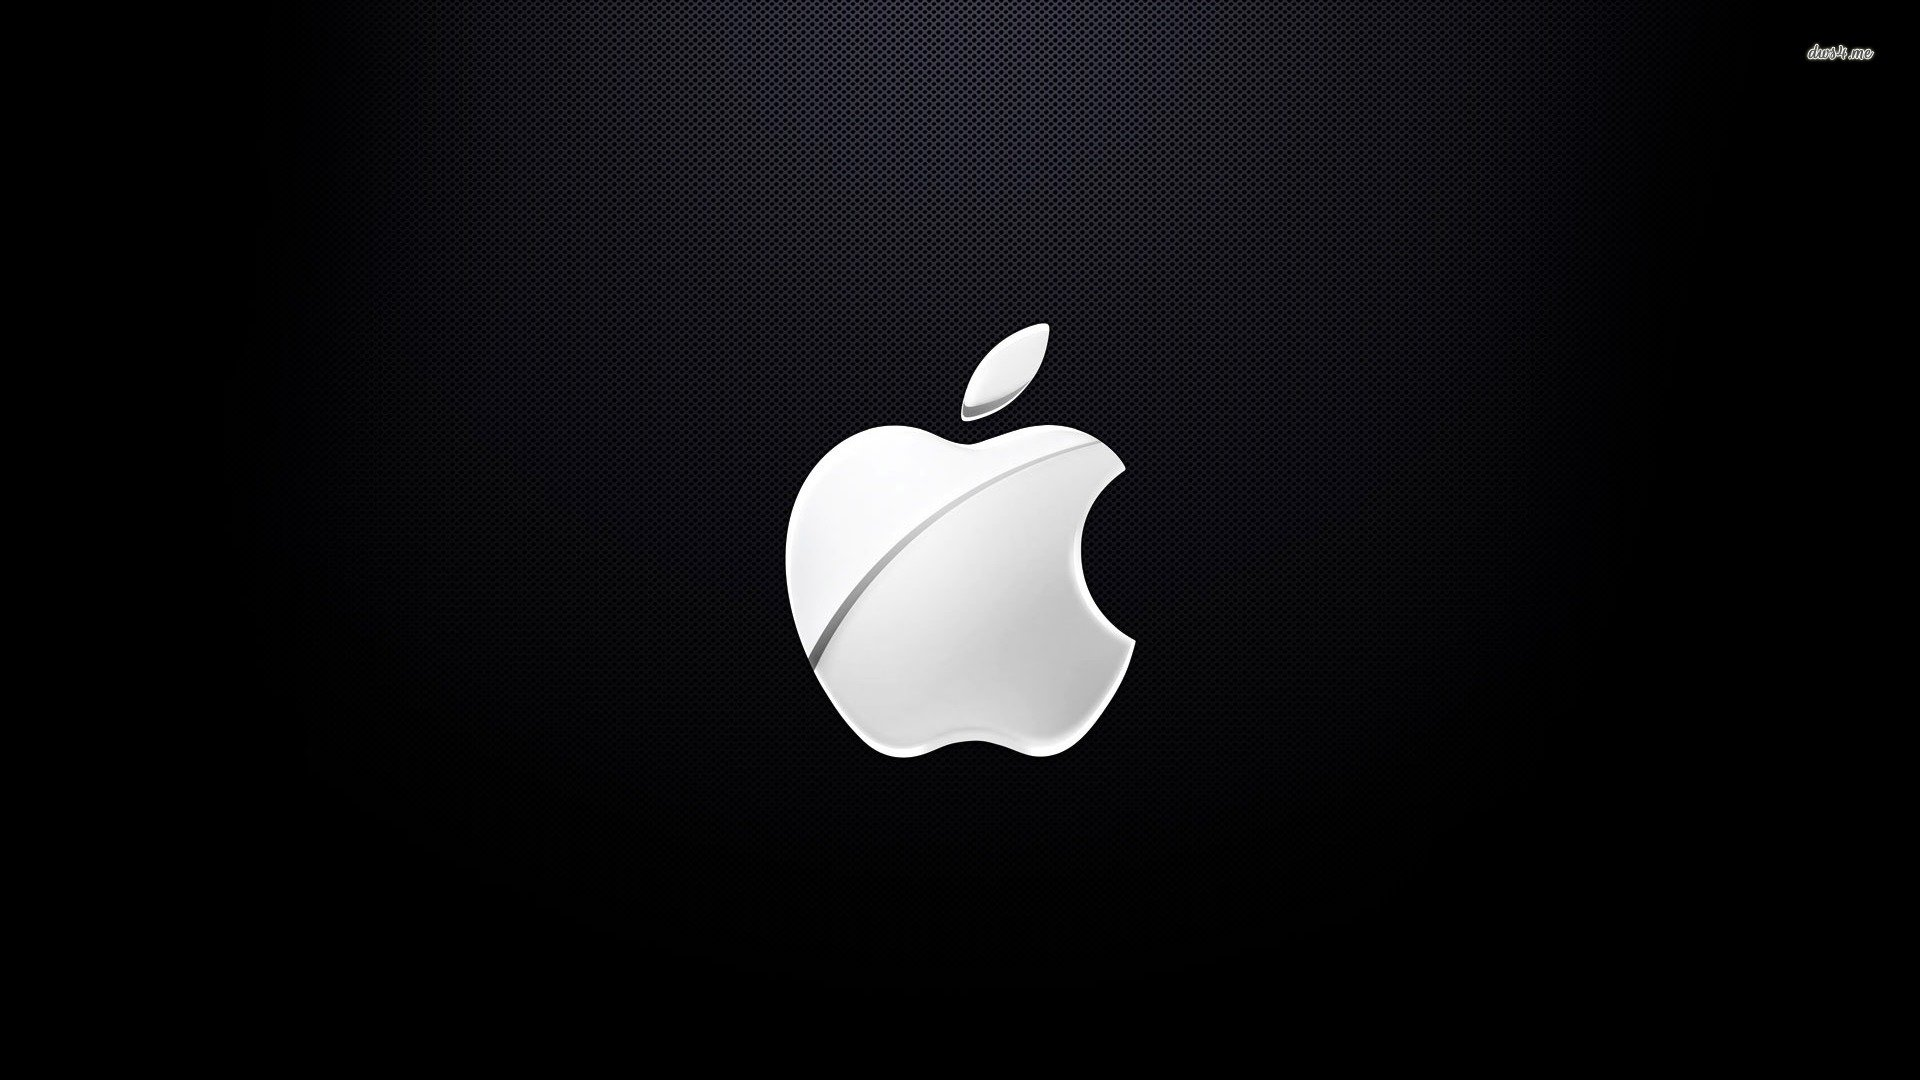 Apple Logo Pictures Black and White HD Wallpaper Apple Logo Pictures 1920x1080